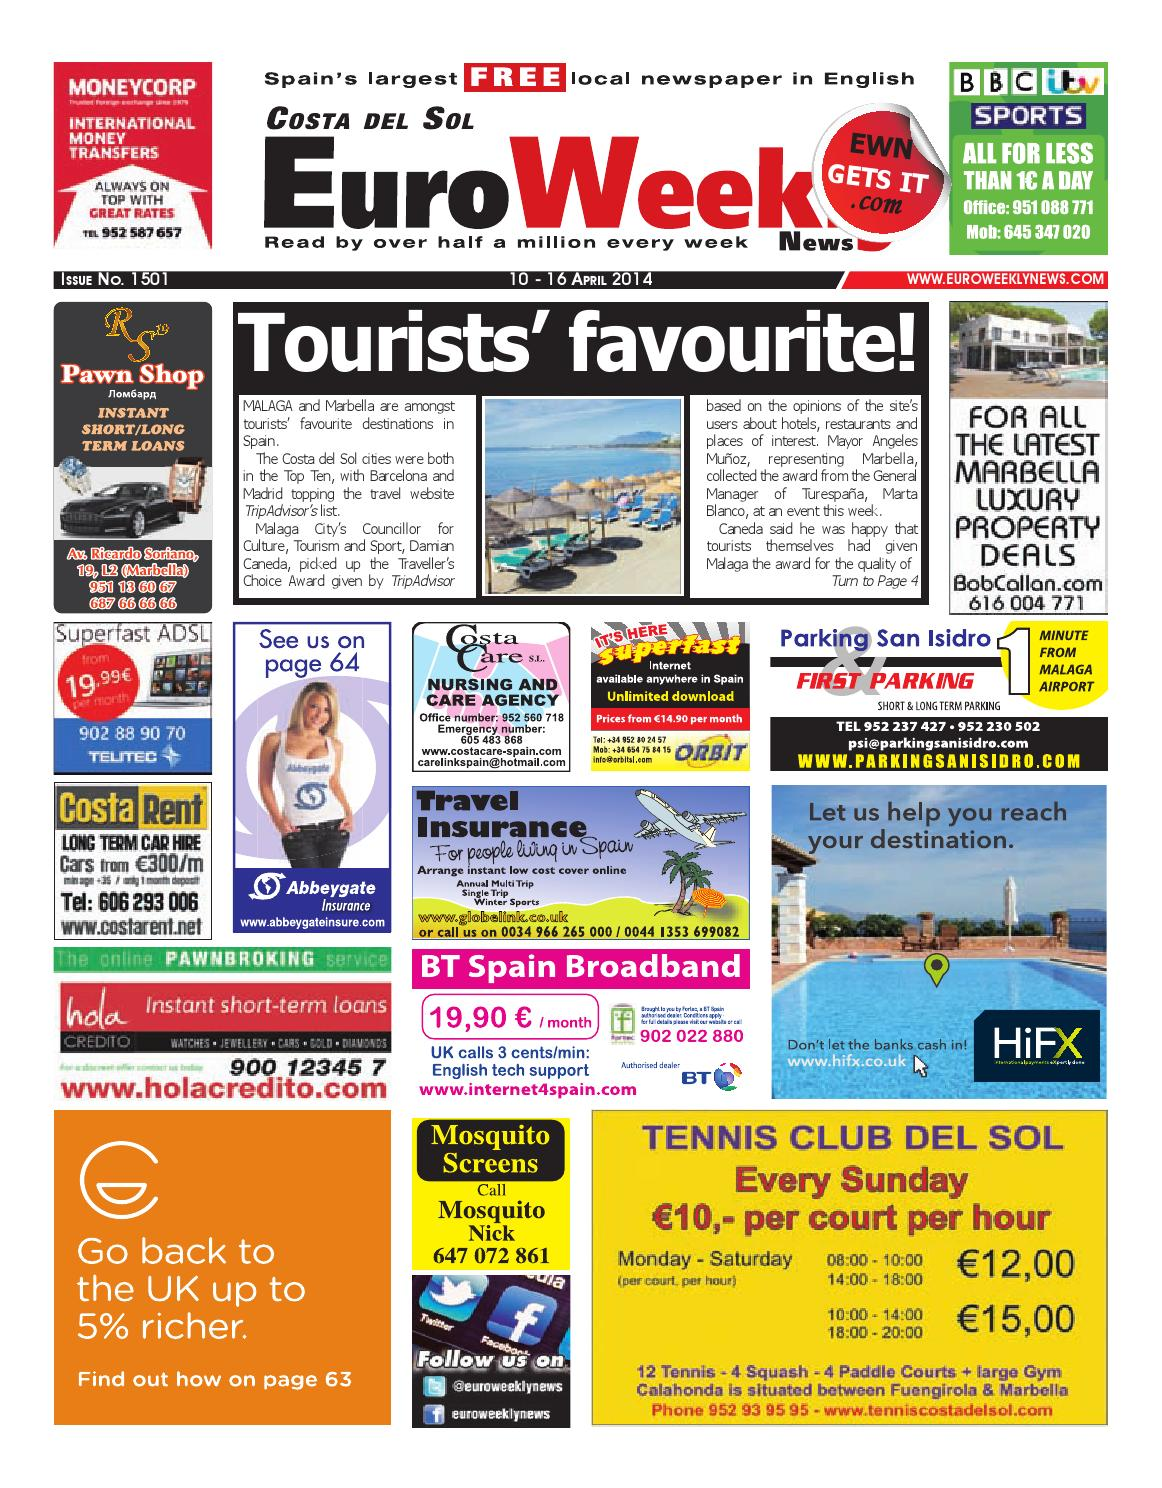 Euro weekly news costa del sol 10 16 april 2014 issue 1501 by euro weekly news costa del sol 10 16 april 2014 issue 1501 by euro weekly news media sa issuu fandeluxe Images